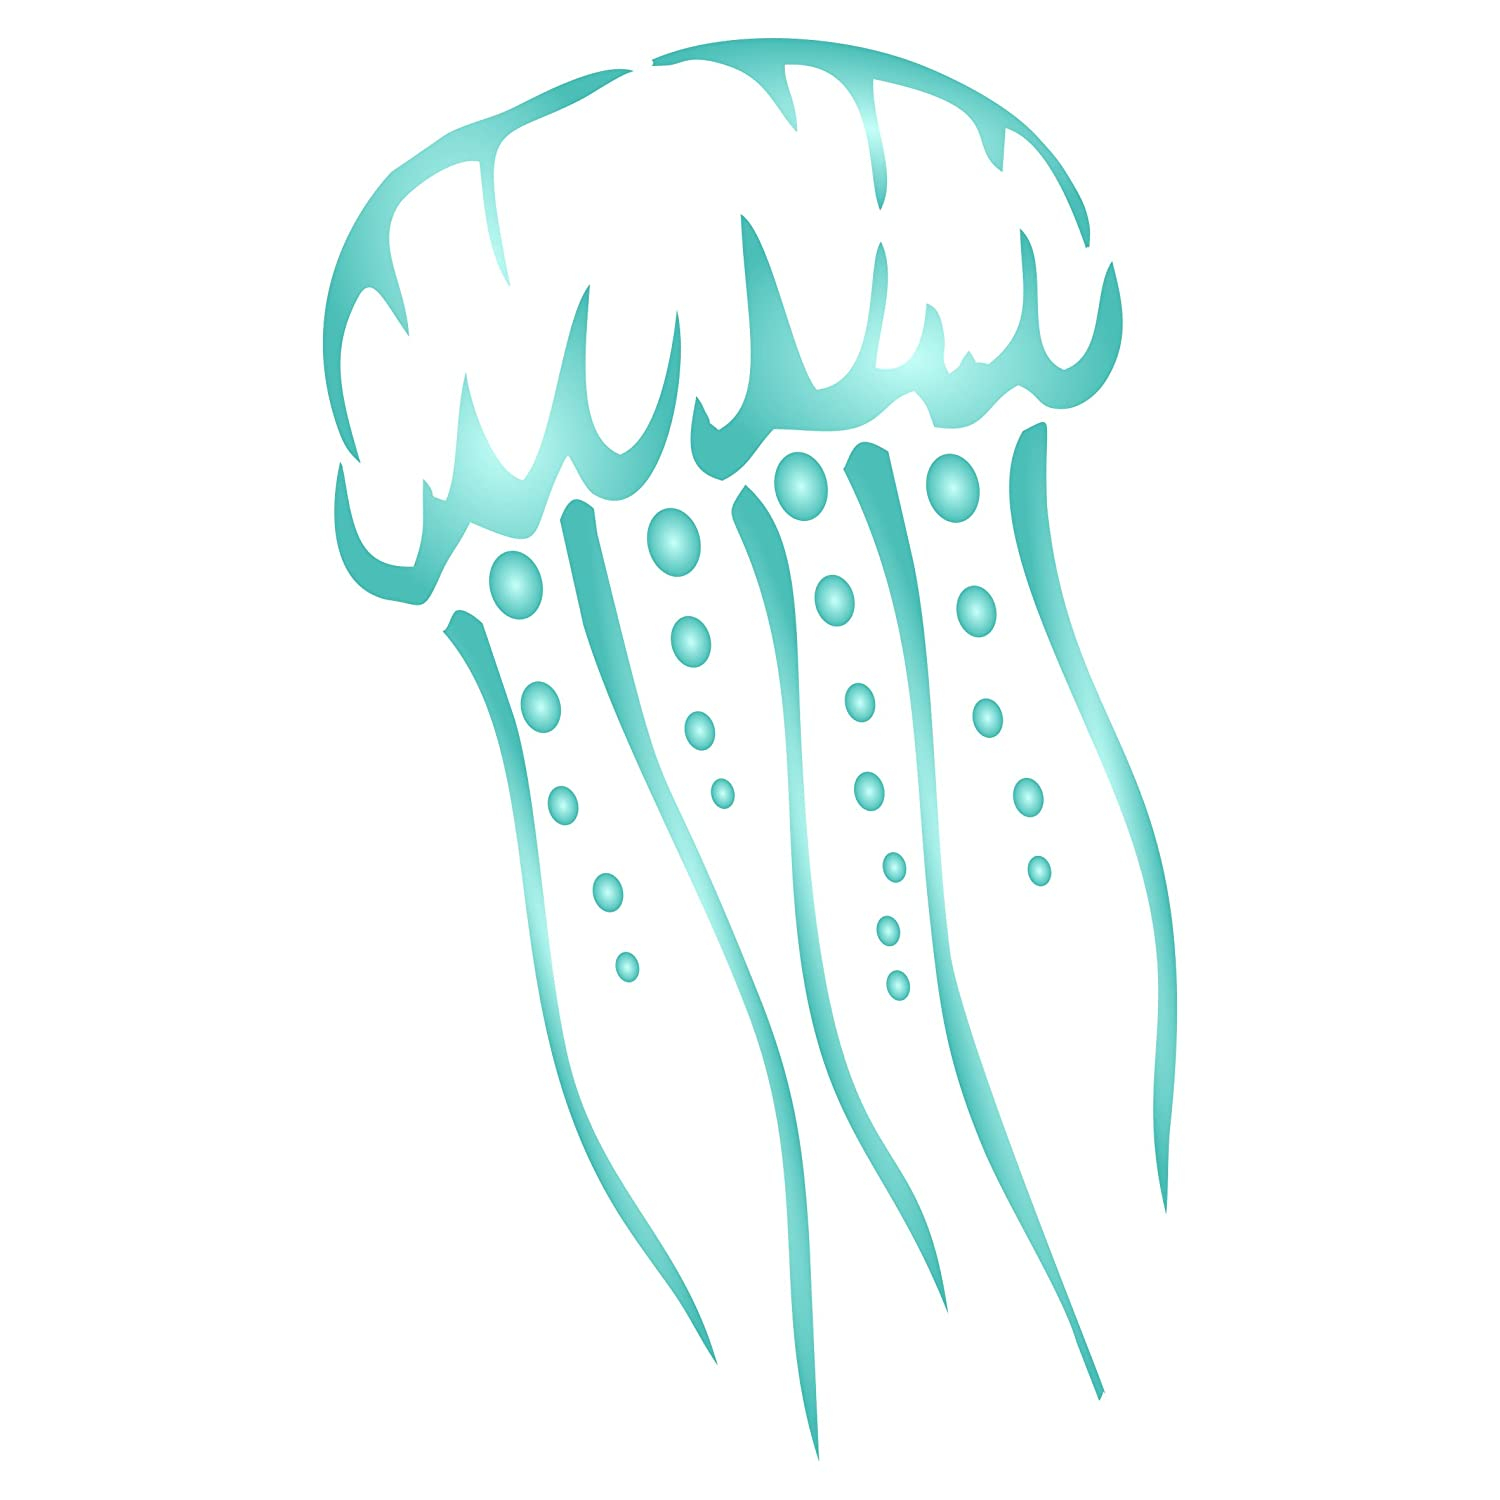 4.5 x 7.5 inch Use on Paper Projects Walls Floors Fabric Furniture Glass Wood etc. Jellyfish Stencil M - Reusable Sea Ocean Nautical Seashore Reef Stencils for Painting